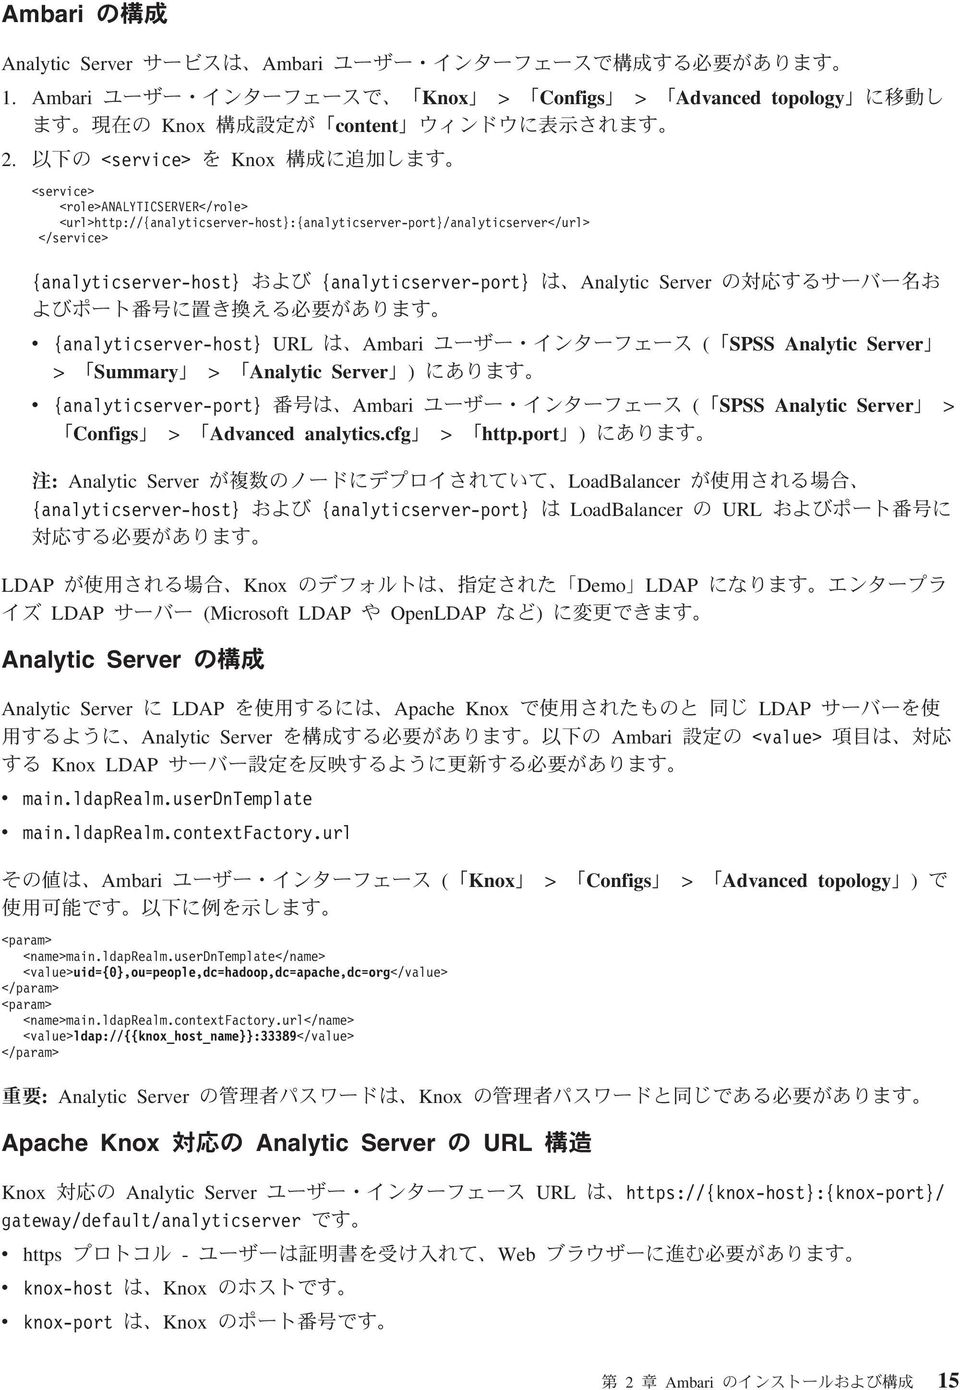 analytic_server_install_book ps - PDF